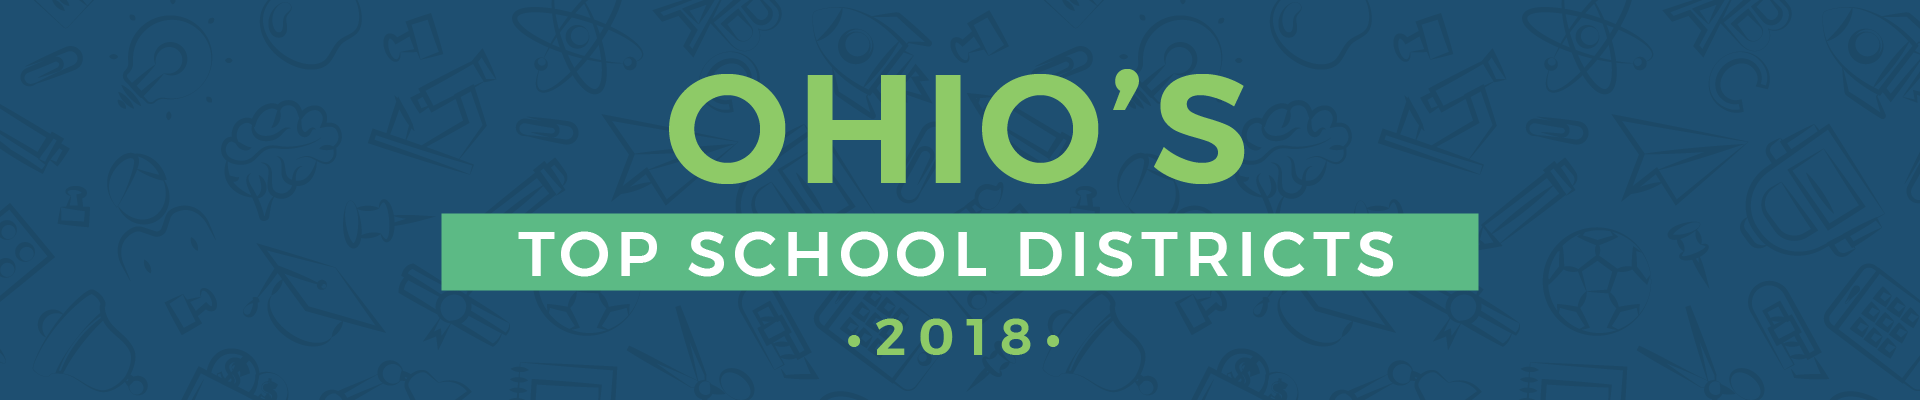 Top School Districts in Ohio, 2018 | BackgroundChecks.org